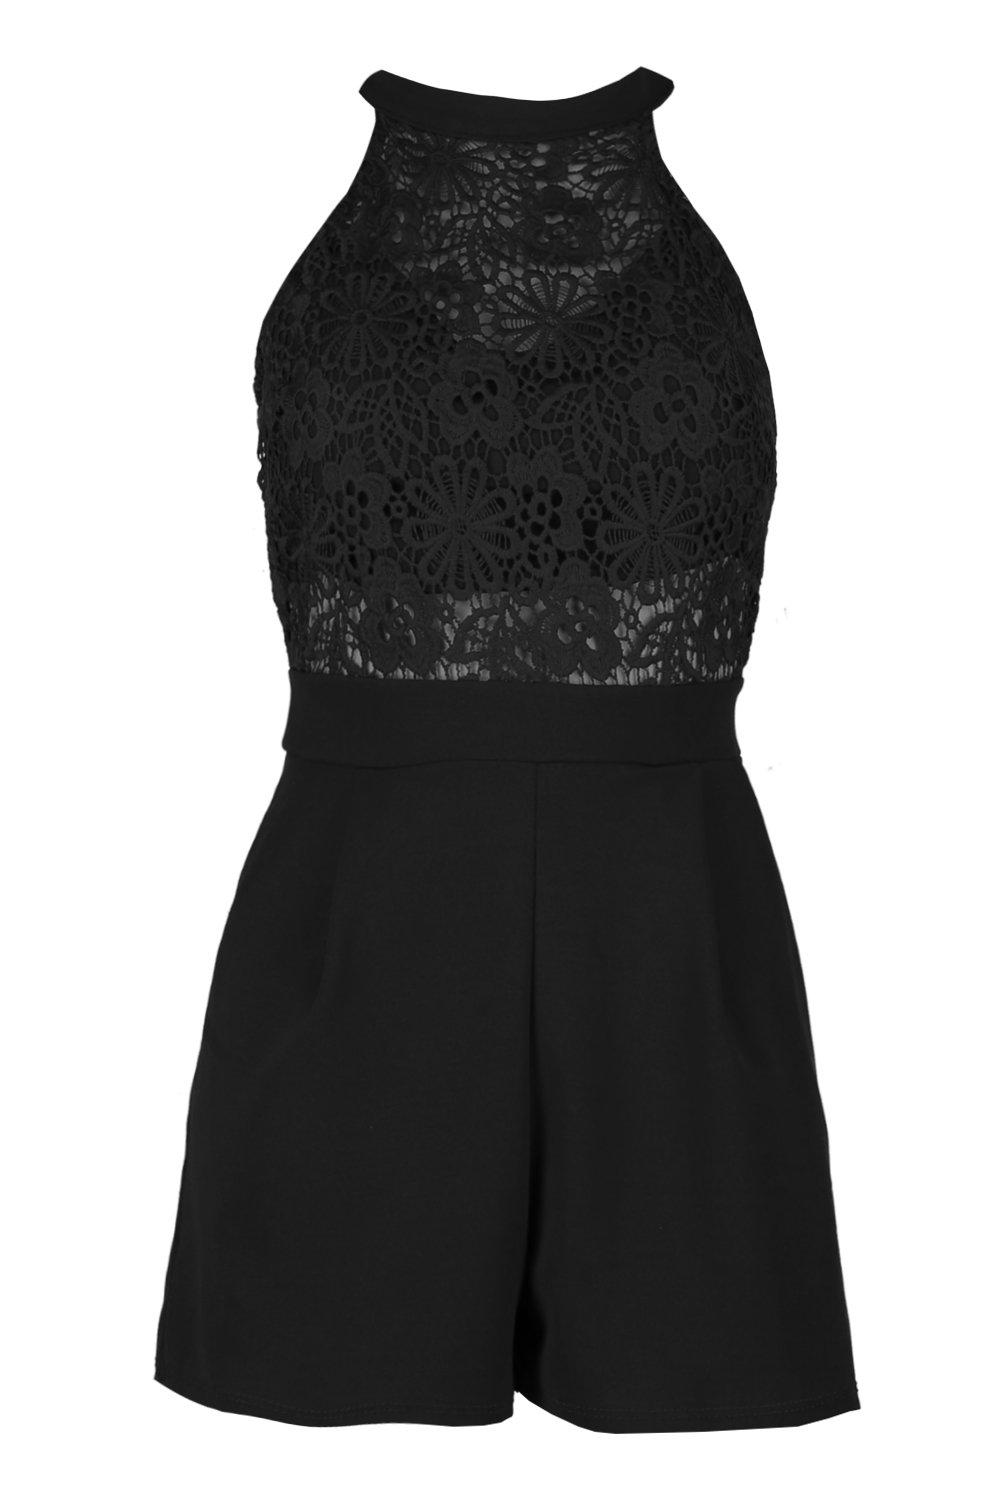 black Detail Neck Boutique Playsuit High Crochet qfXFw6Z